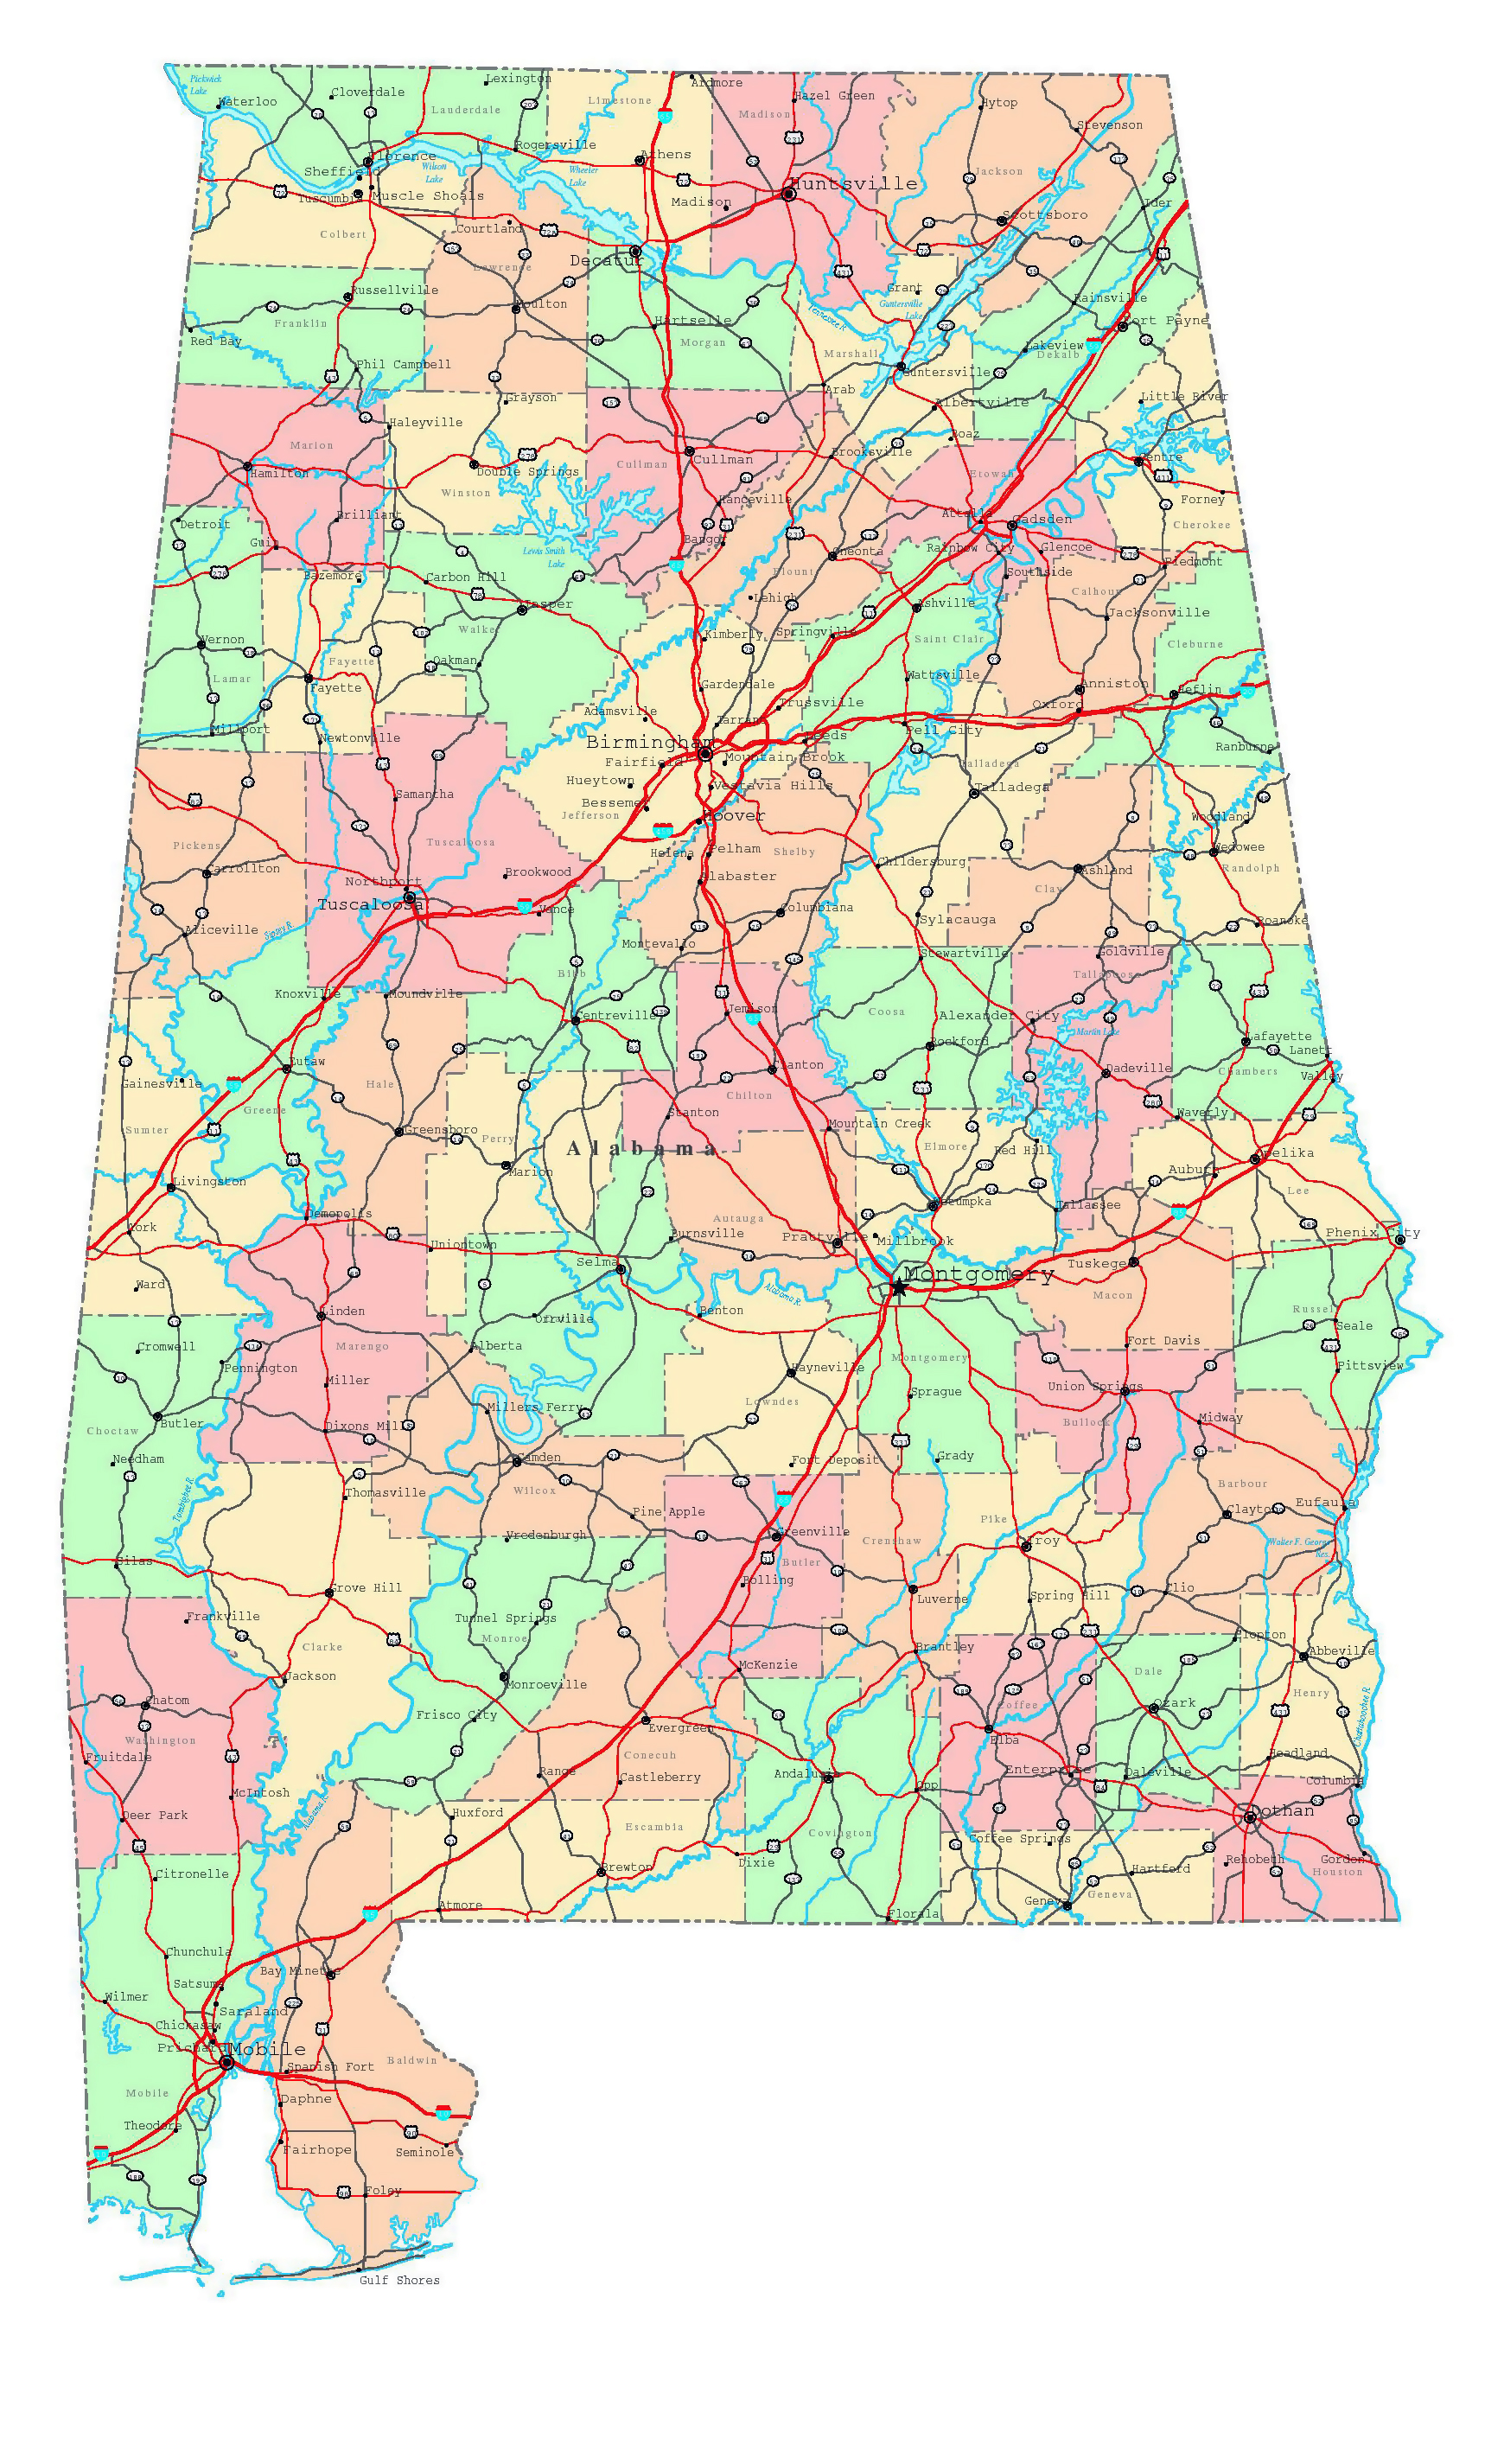 Large Detailed Administrative Map Of Alabama State With Roads - Alabama map usa